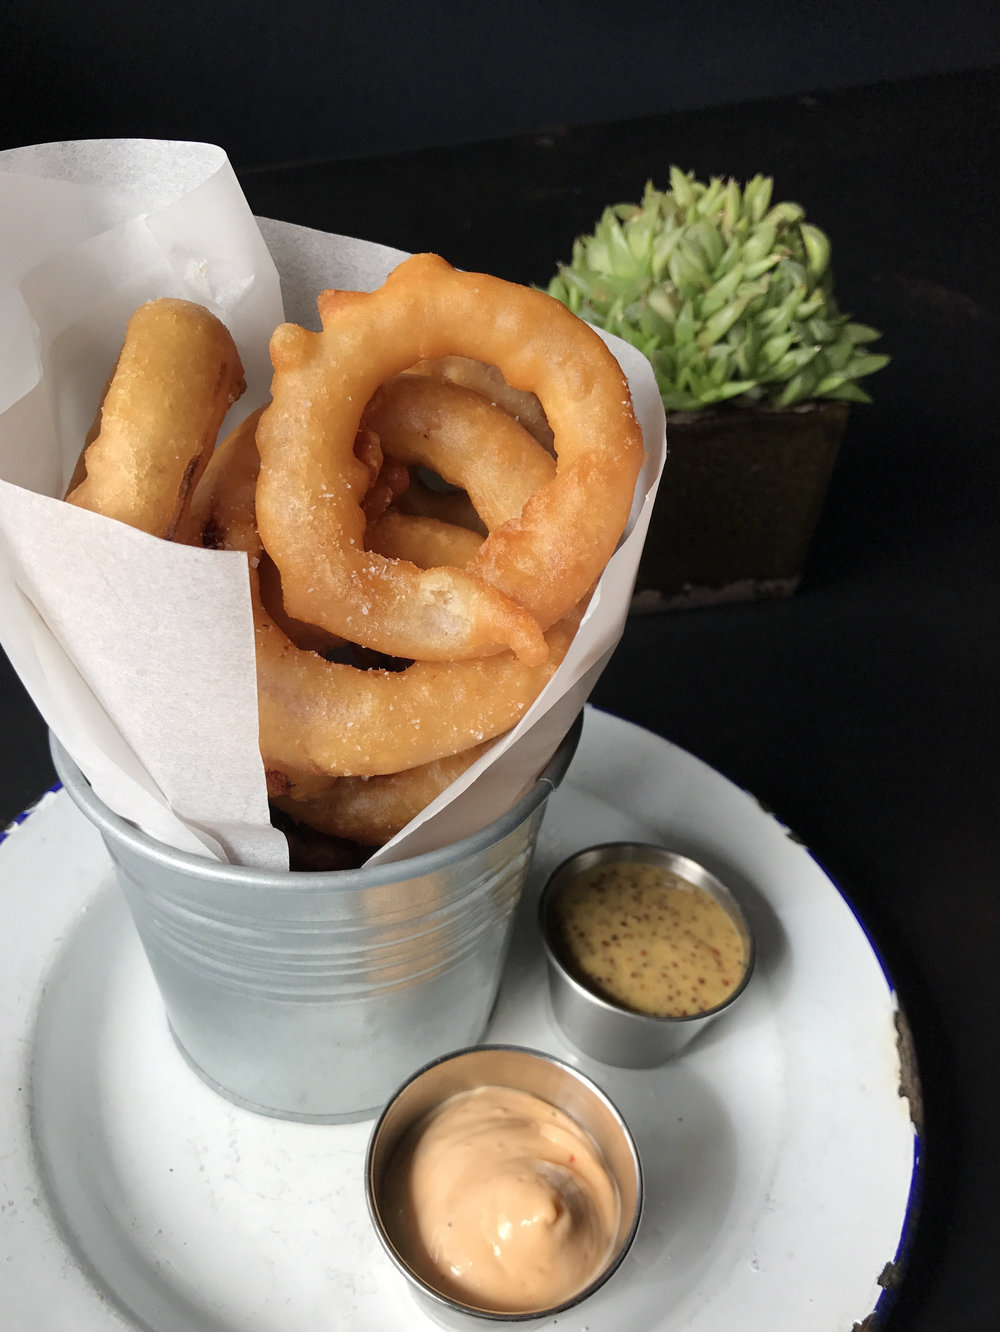 Balsamic marinated onion rings with spiced aioli and mustard